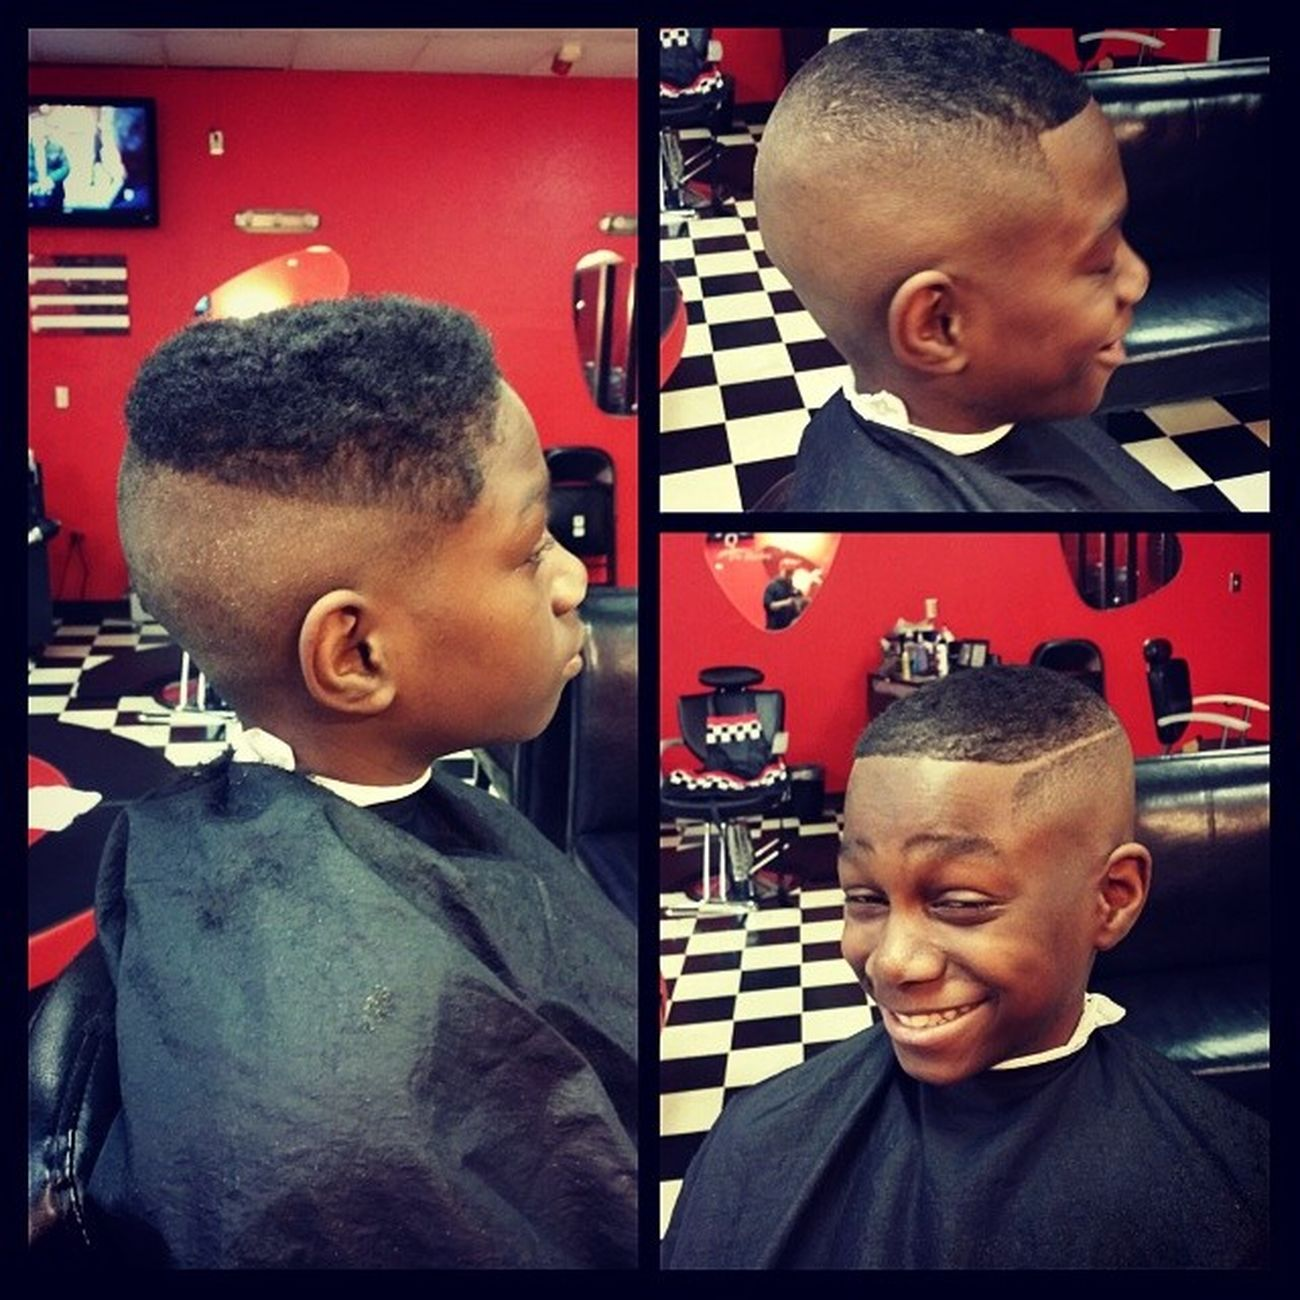 Lil dude got me working hard on my off day. High bald fade with a part @sophista_cutz BaldFade Barbergang Barbershopconnect RazorWork Razoredge BlurryFades